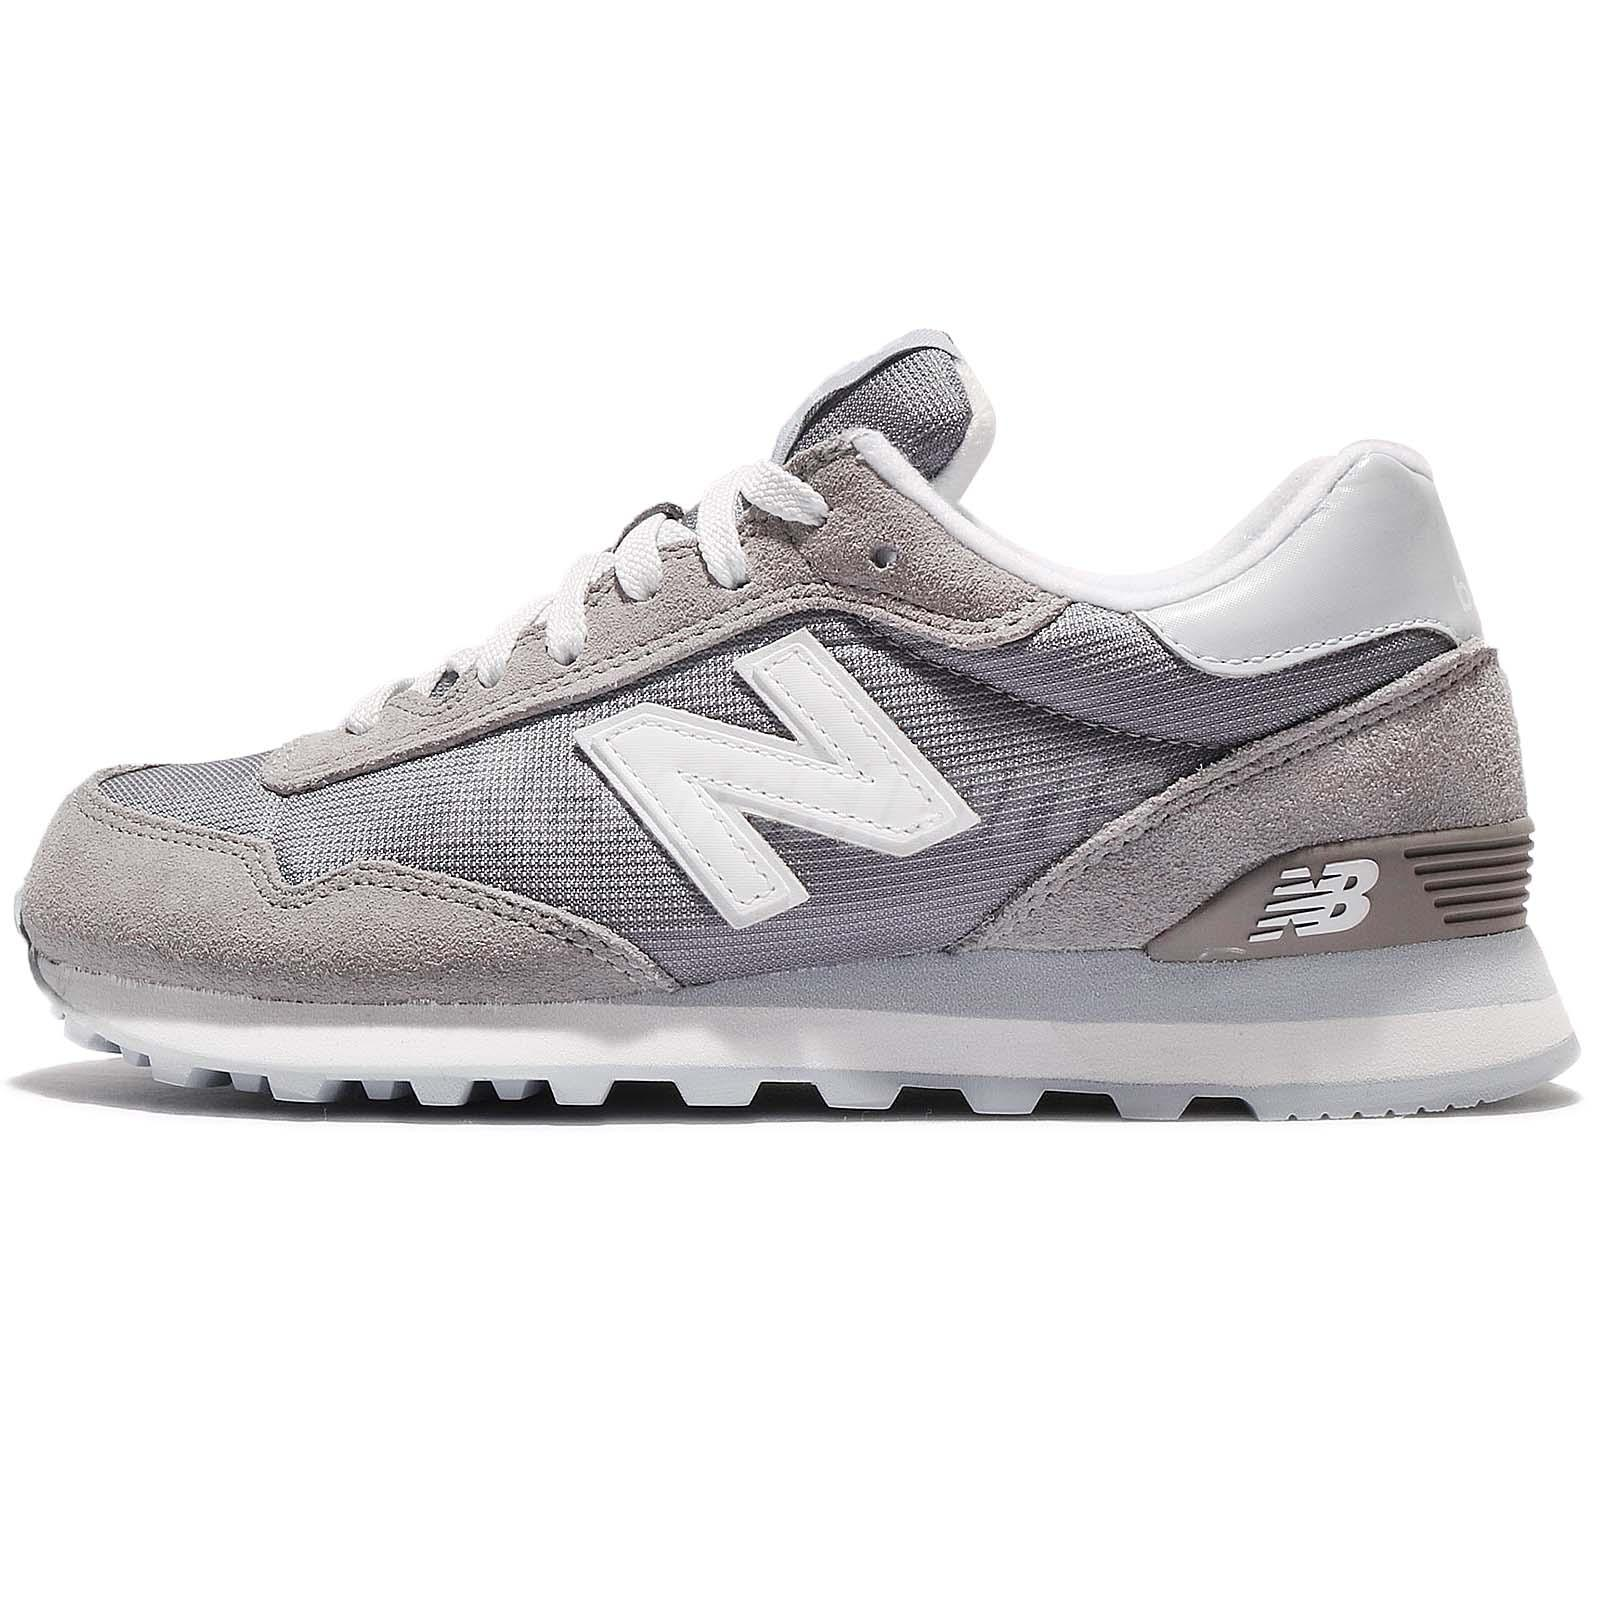 New Balance WL515IFC B Suede Grey White Women Running Shoes Sneakers WL515IFCB